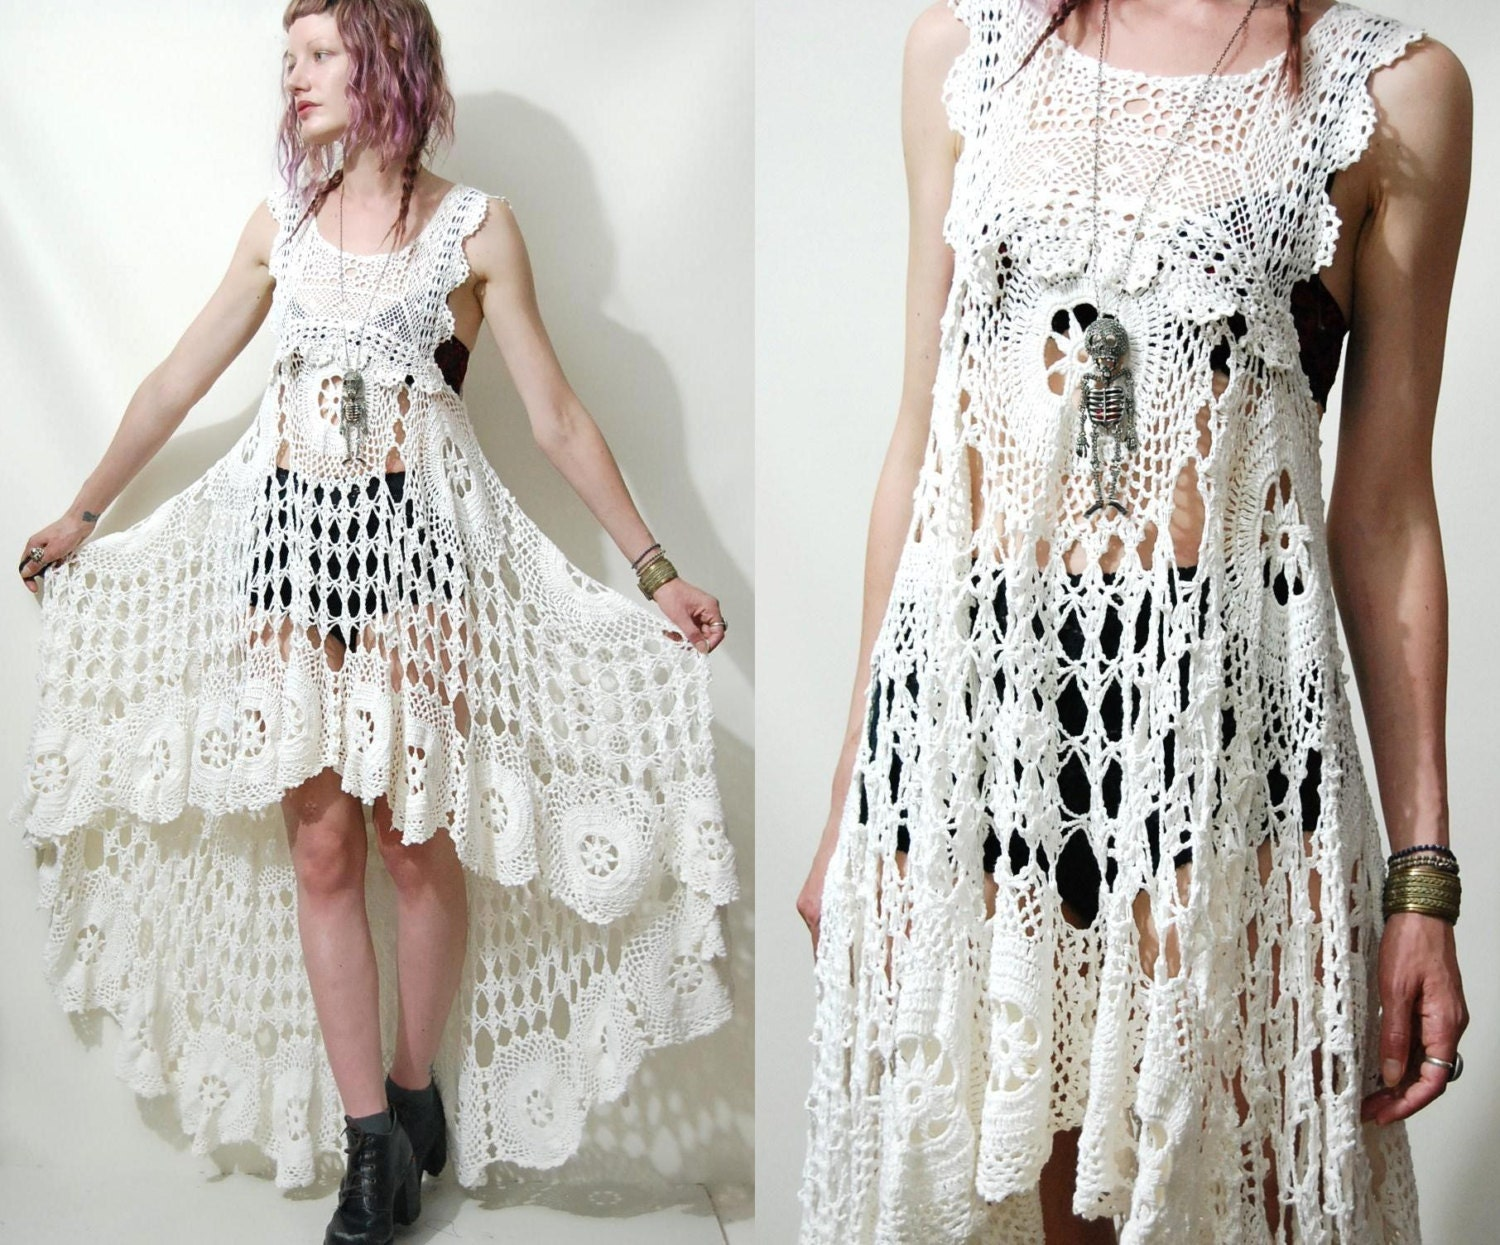 Crochet Stitches For Dresses : Crochet Dress VINTAGE LACE White Fishtail/Train by cruxandcrow